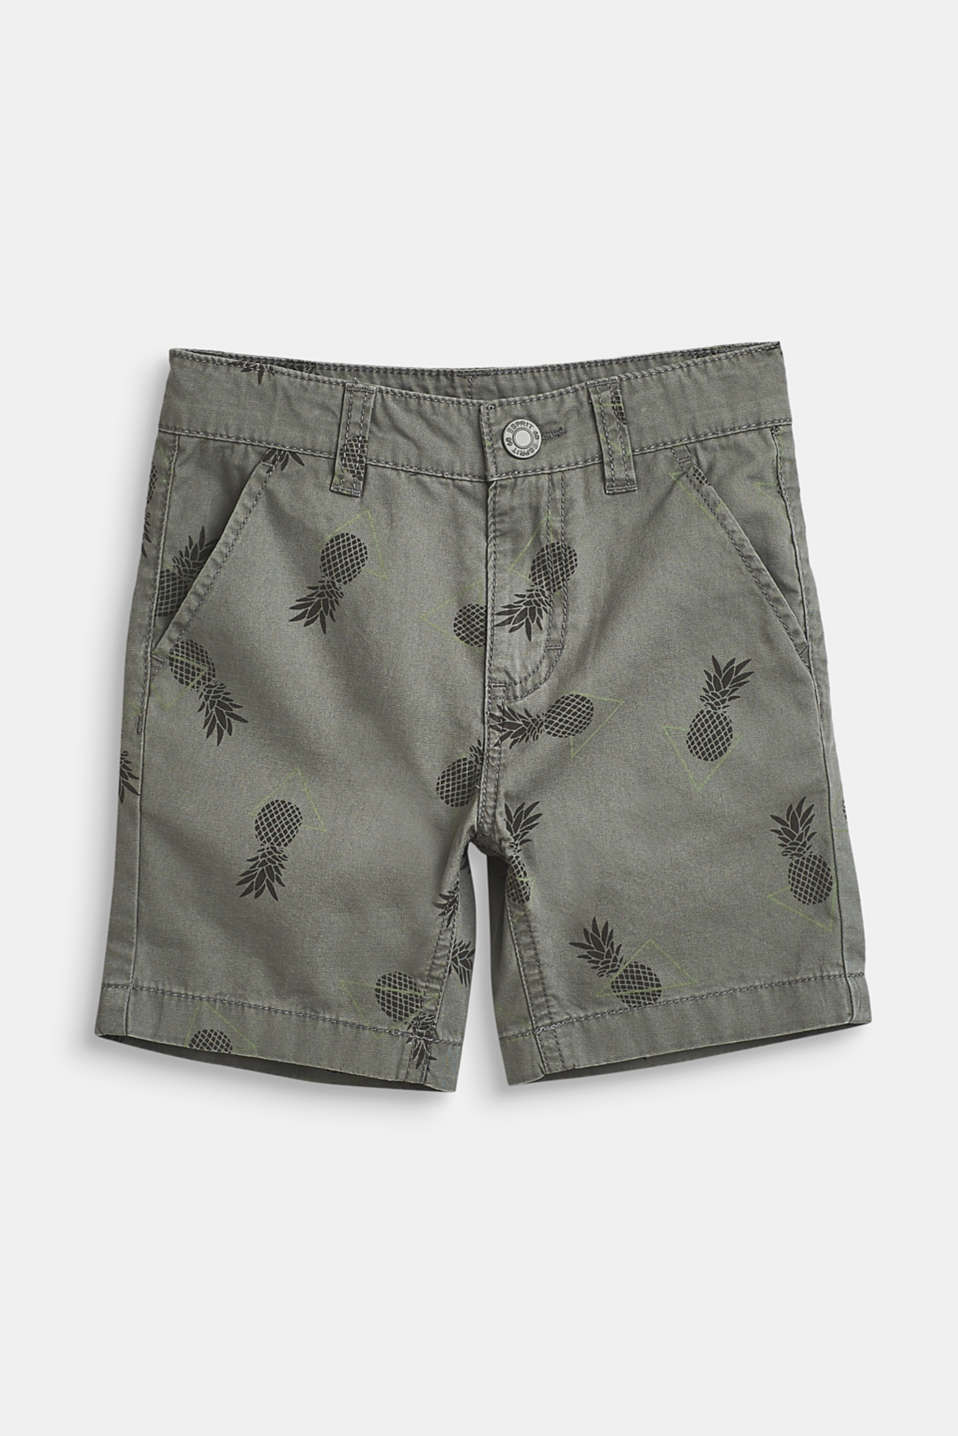 Esprit - Pineapple print shorts, 100% cotton